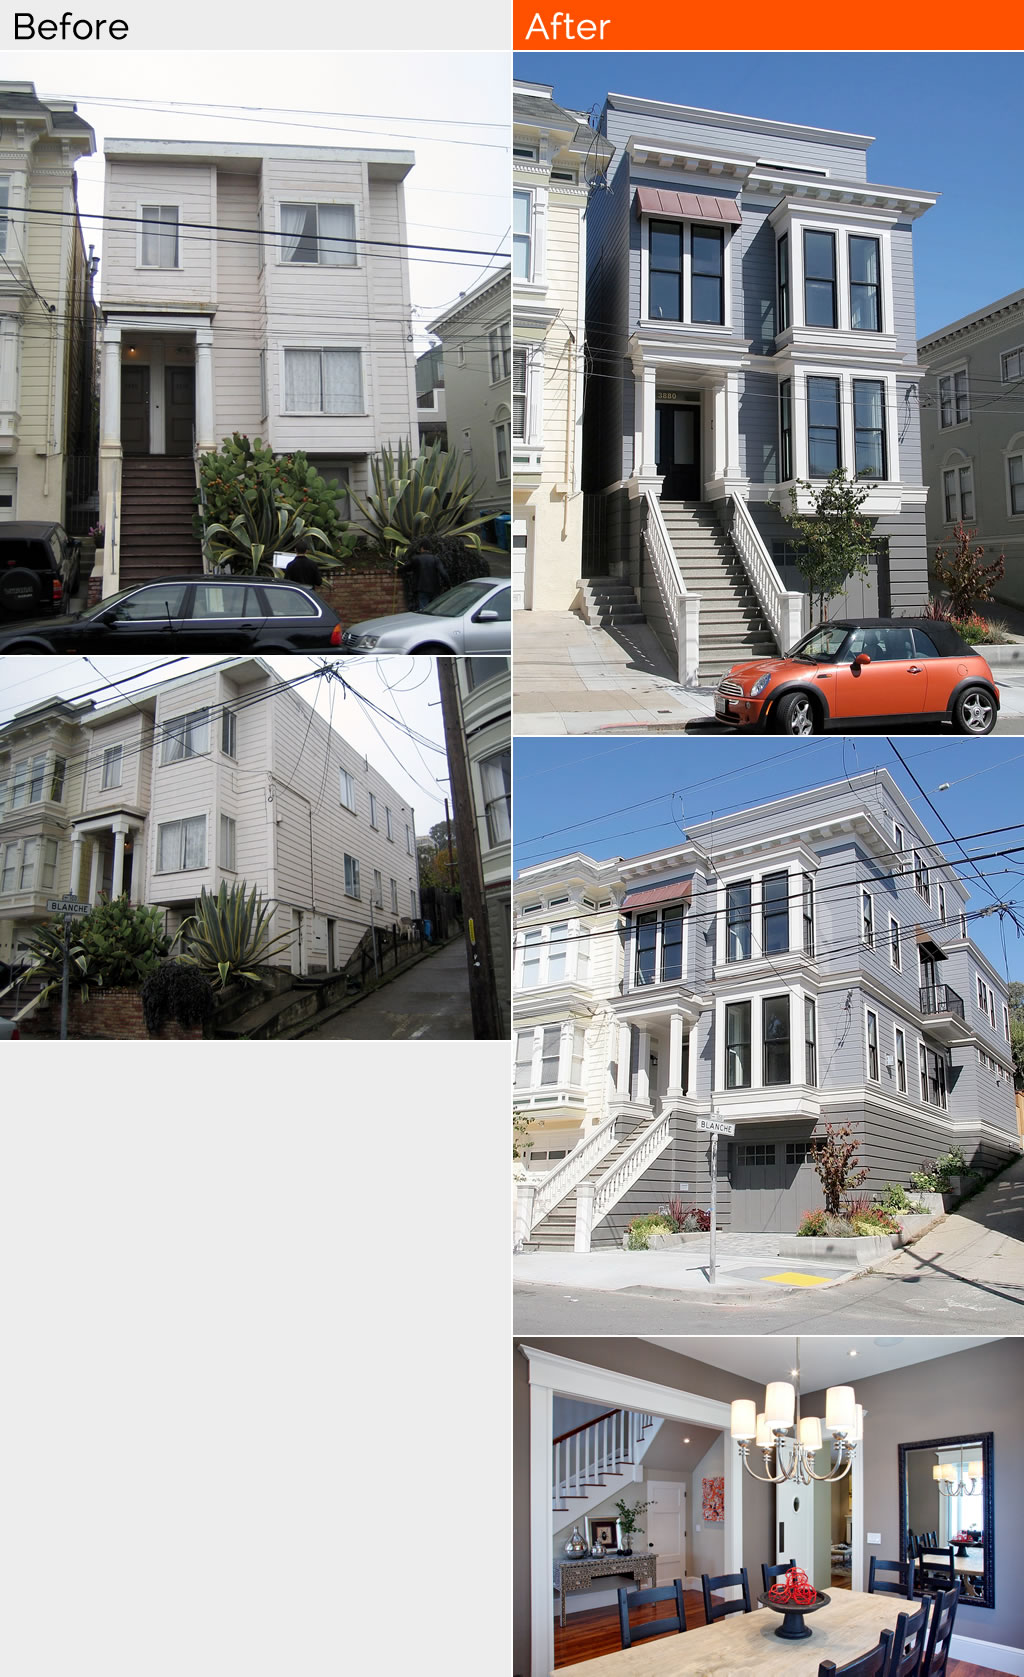 Before and After Remodel - Noe Valley, San Francisco